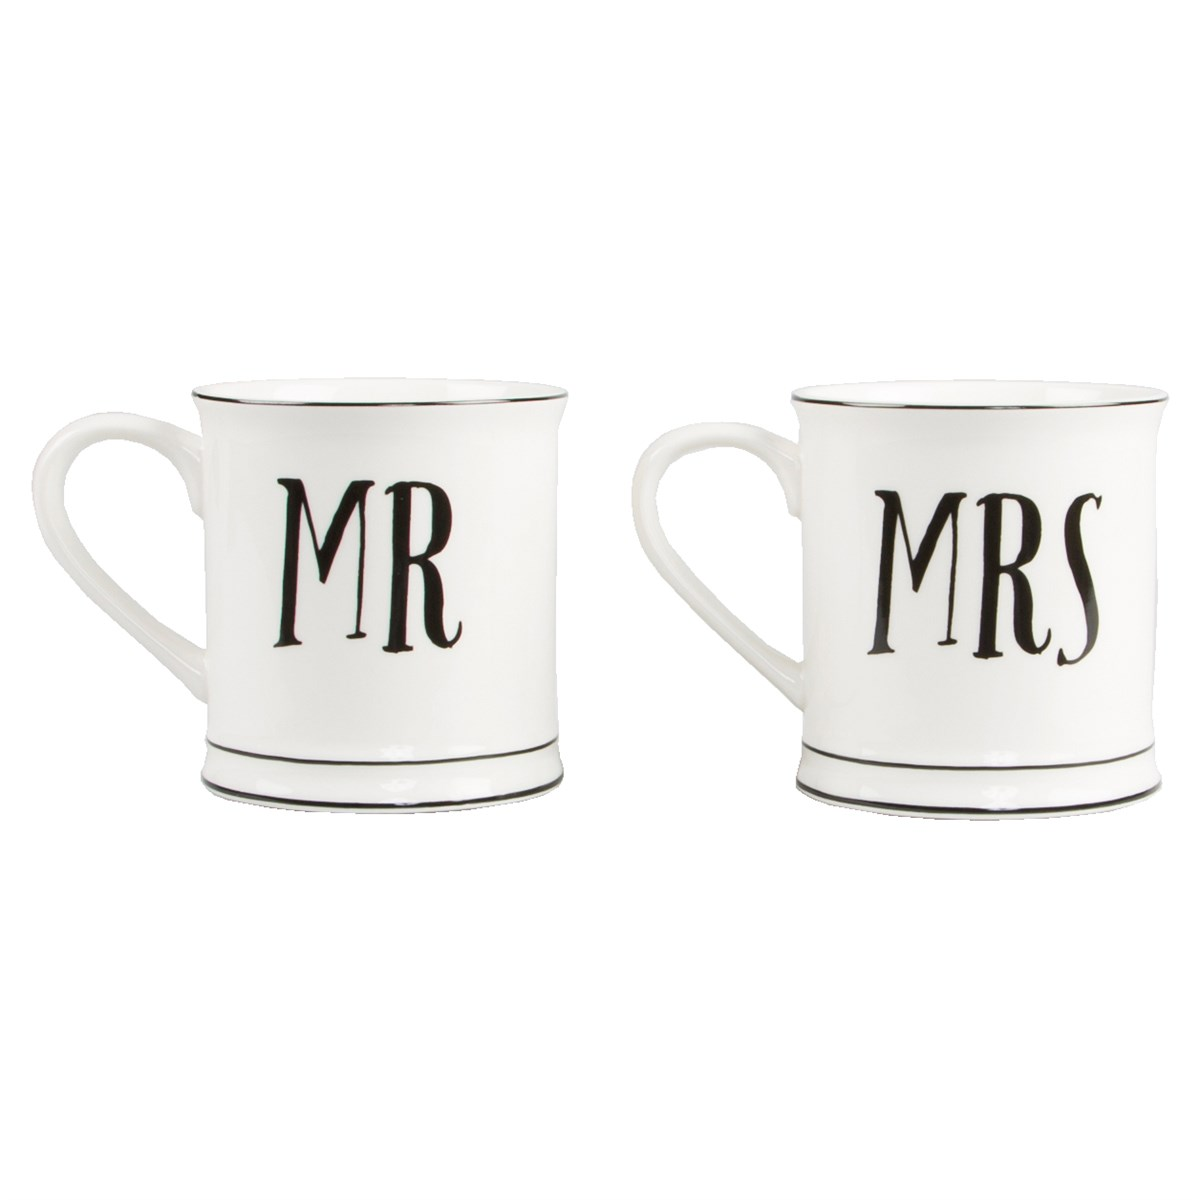 Mugg Mr & Mrs (svart/vit) (Mr) • Pryloteket